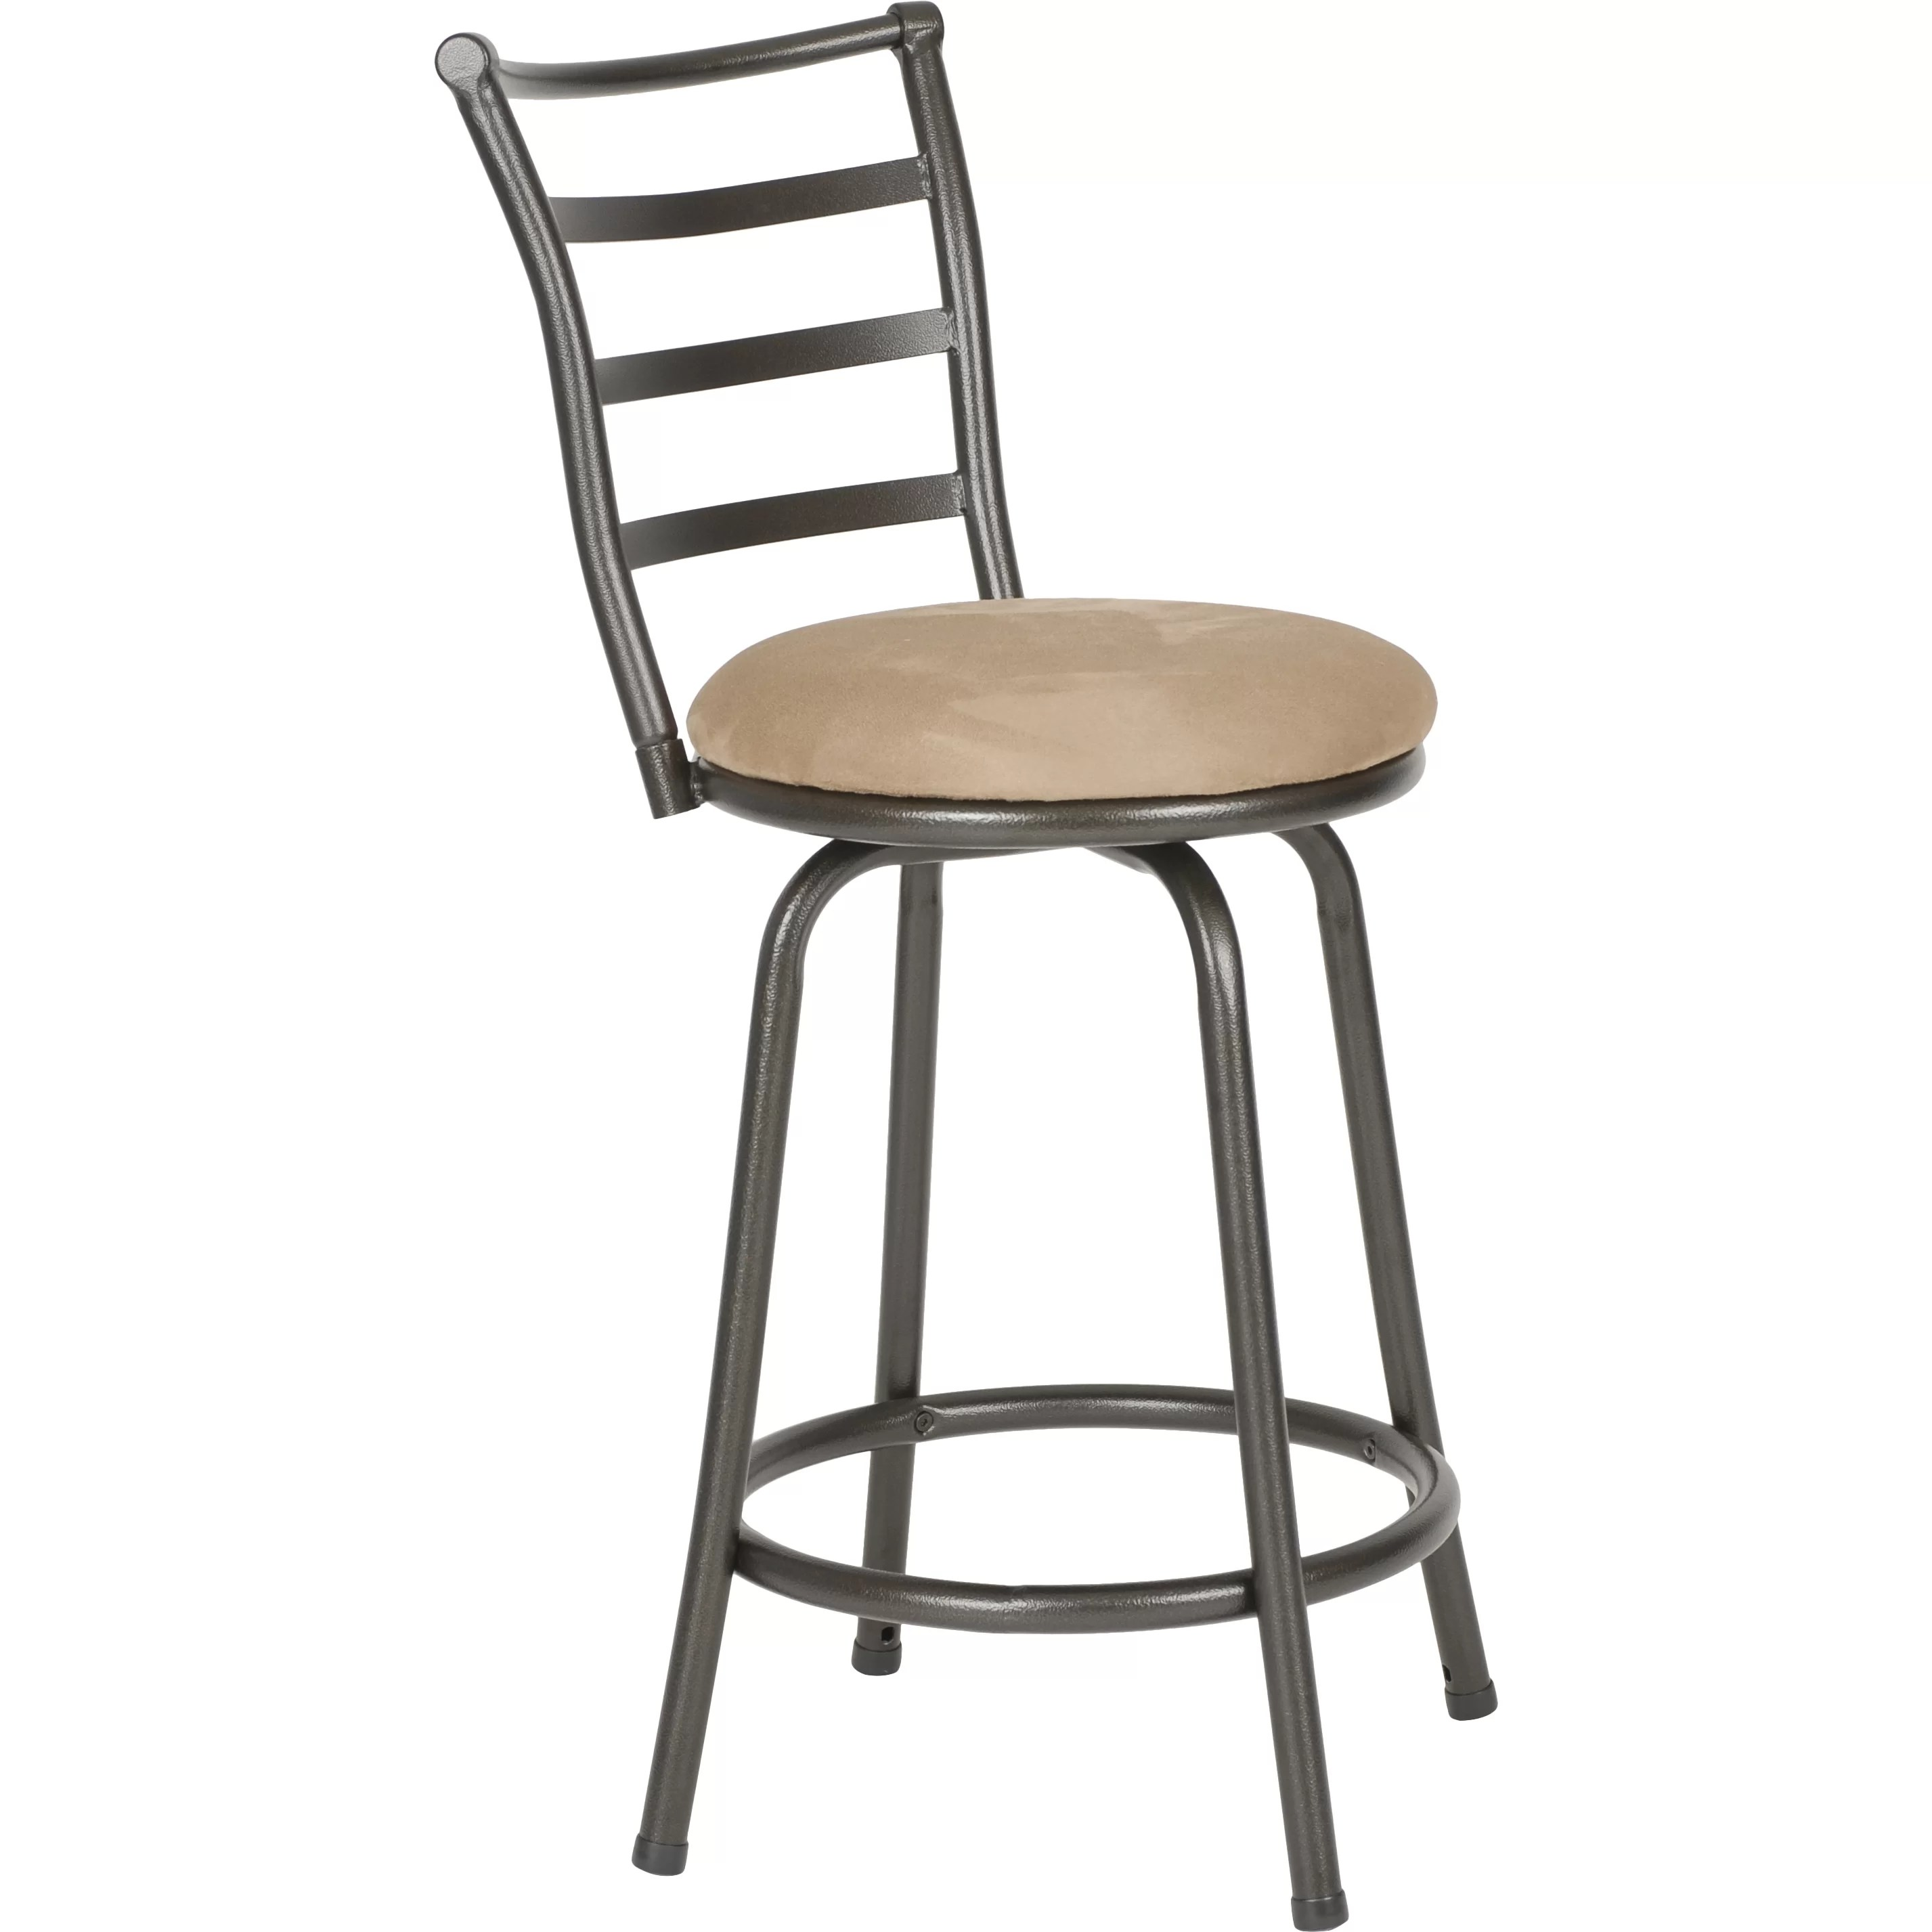 Kitchen Swivel Bar Stools Roundhill Furniture Swivel Bar Stool And Reviews Wayfair